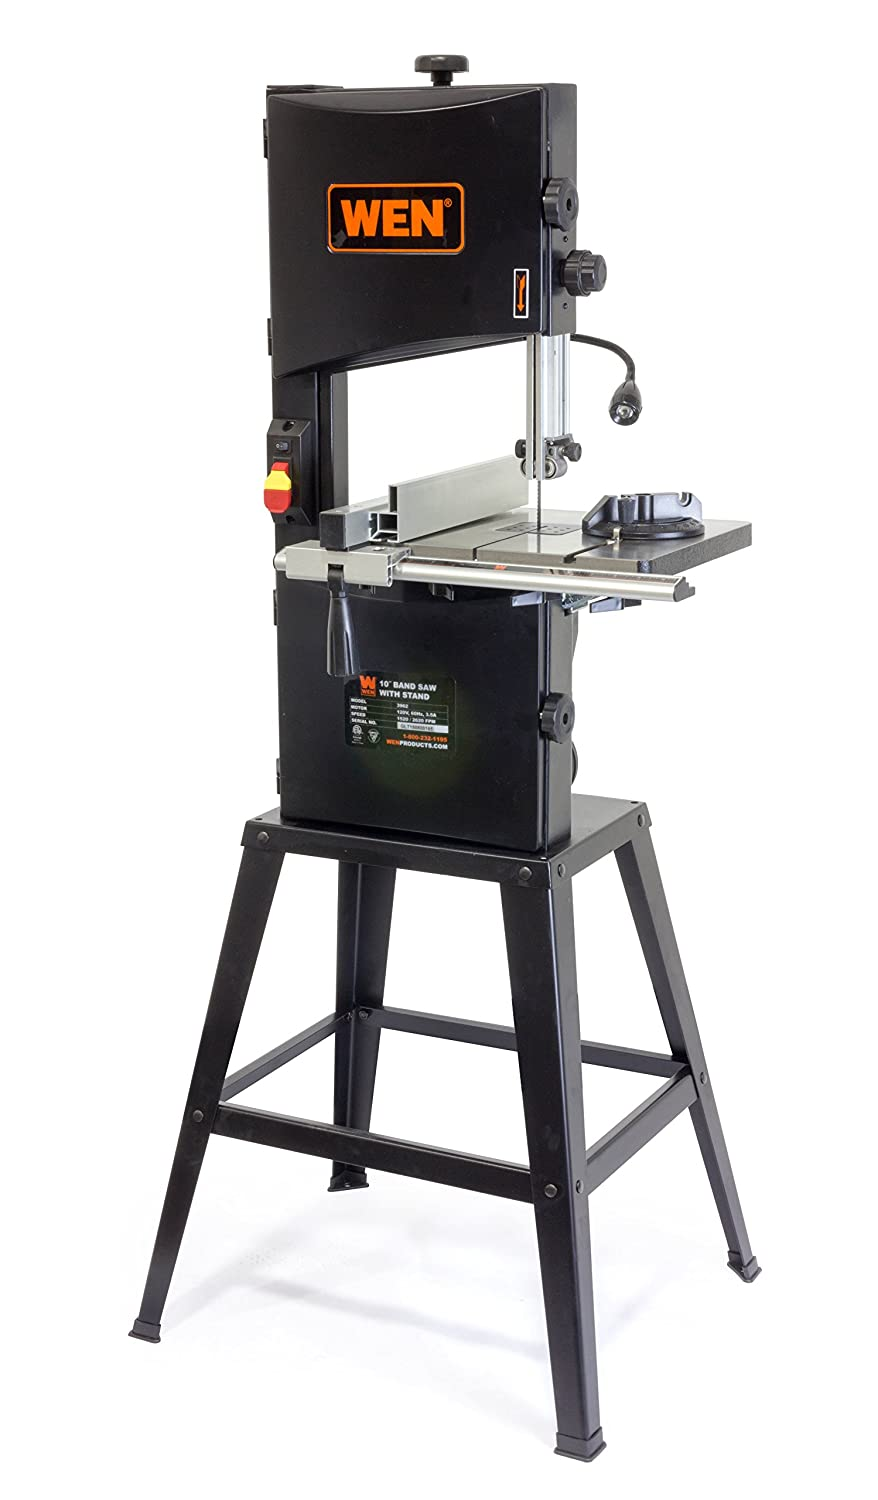 WEN 3962 Band Saw Reviews